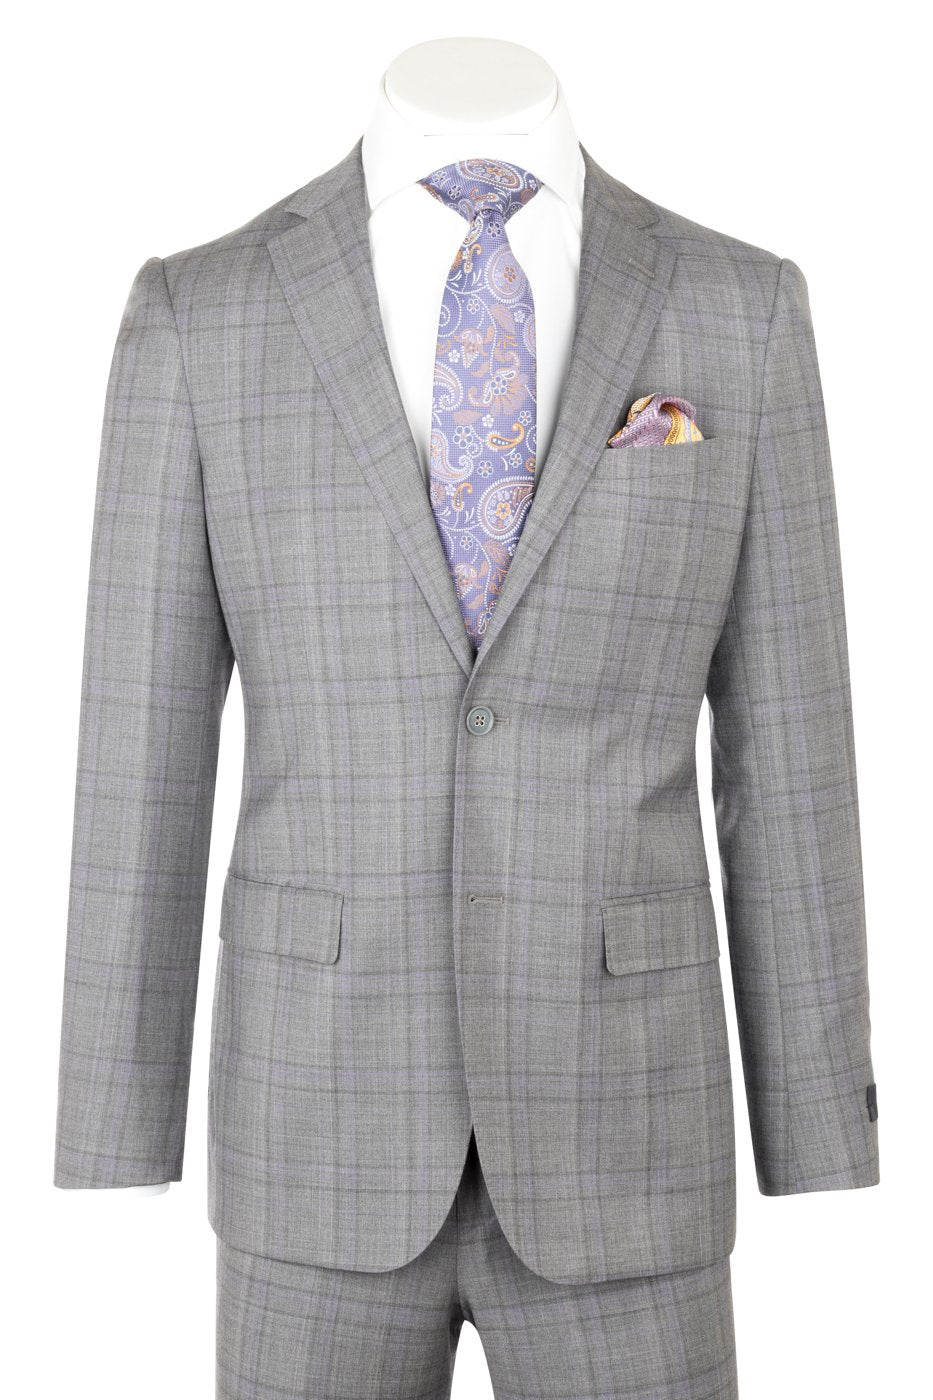 Porto Slim Fit, Medium Gray with Lavender windowpane, Pure Wool Suit by Reda Cloth by Canaletto Menswear CR141607/5